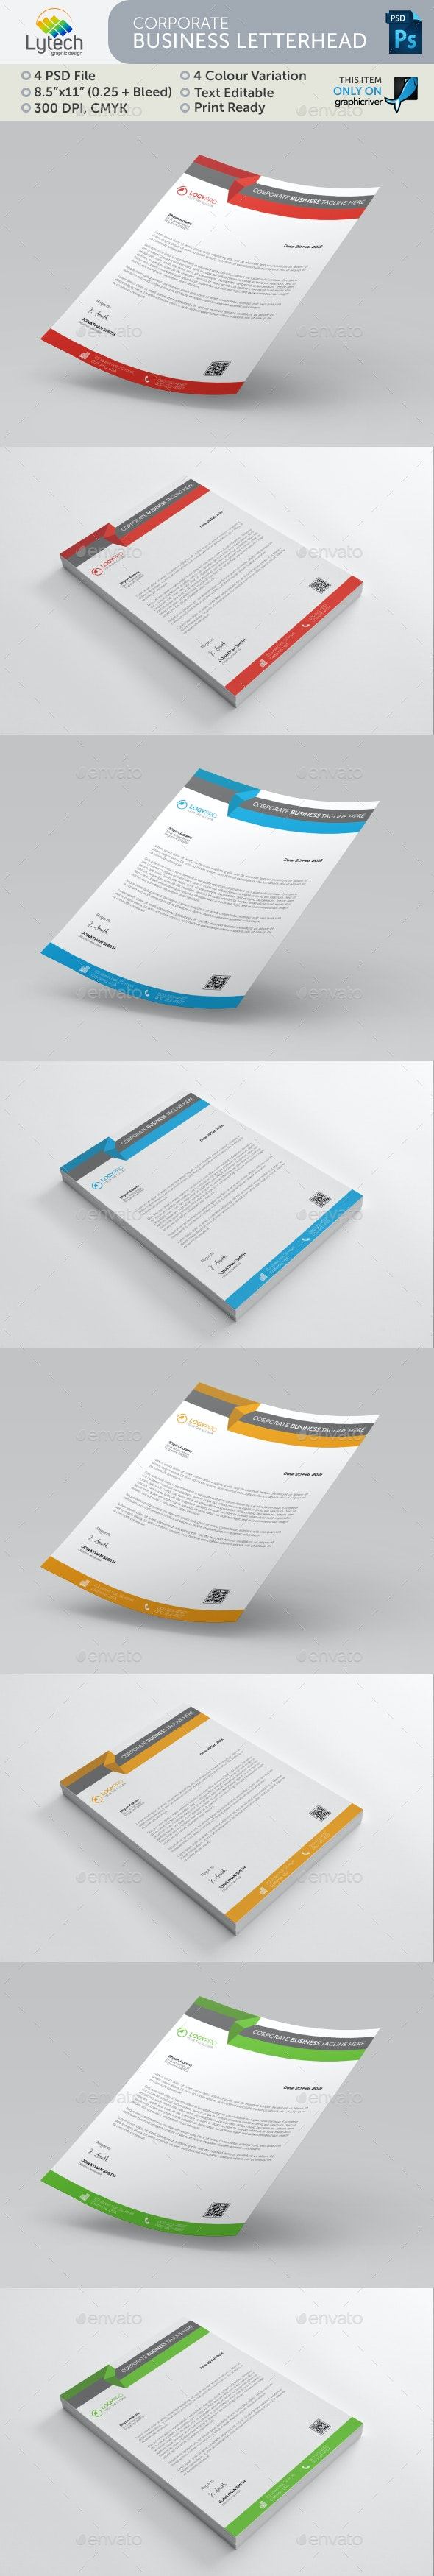 Carporate Business Letterhead - Stationery Print Templates